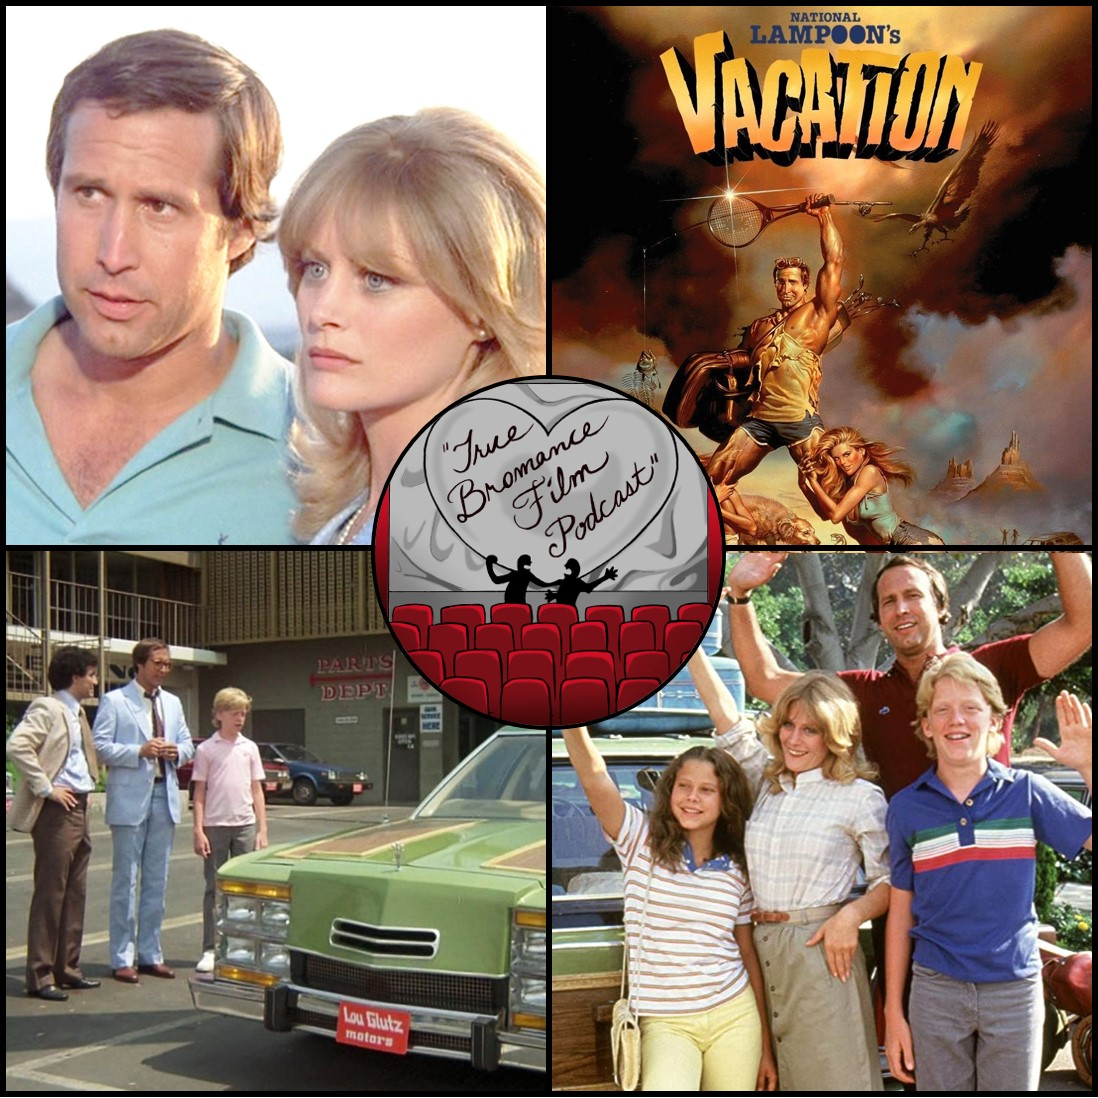 Artwork for National Lampoon's Vacation